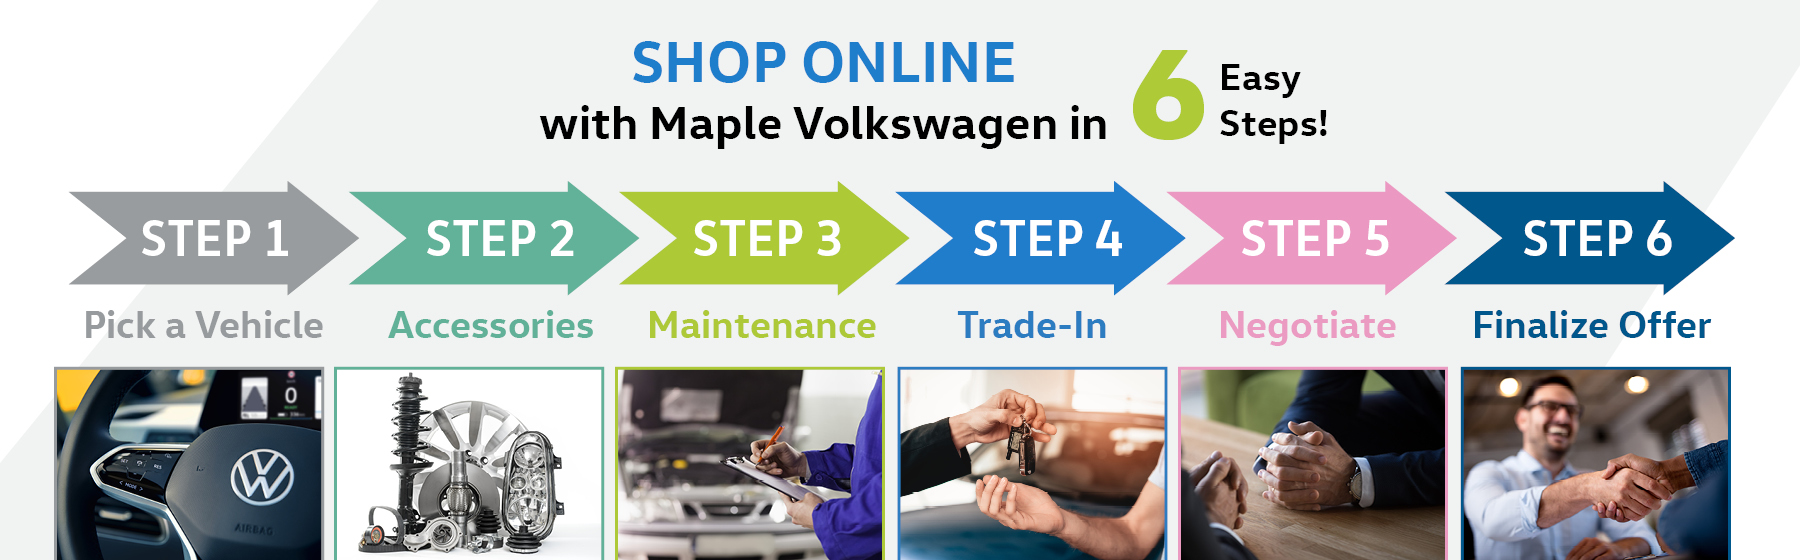 195a 21 Maple Volkswagen Shop Online Feb 2021